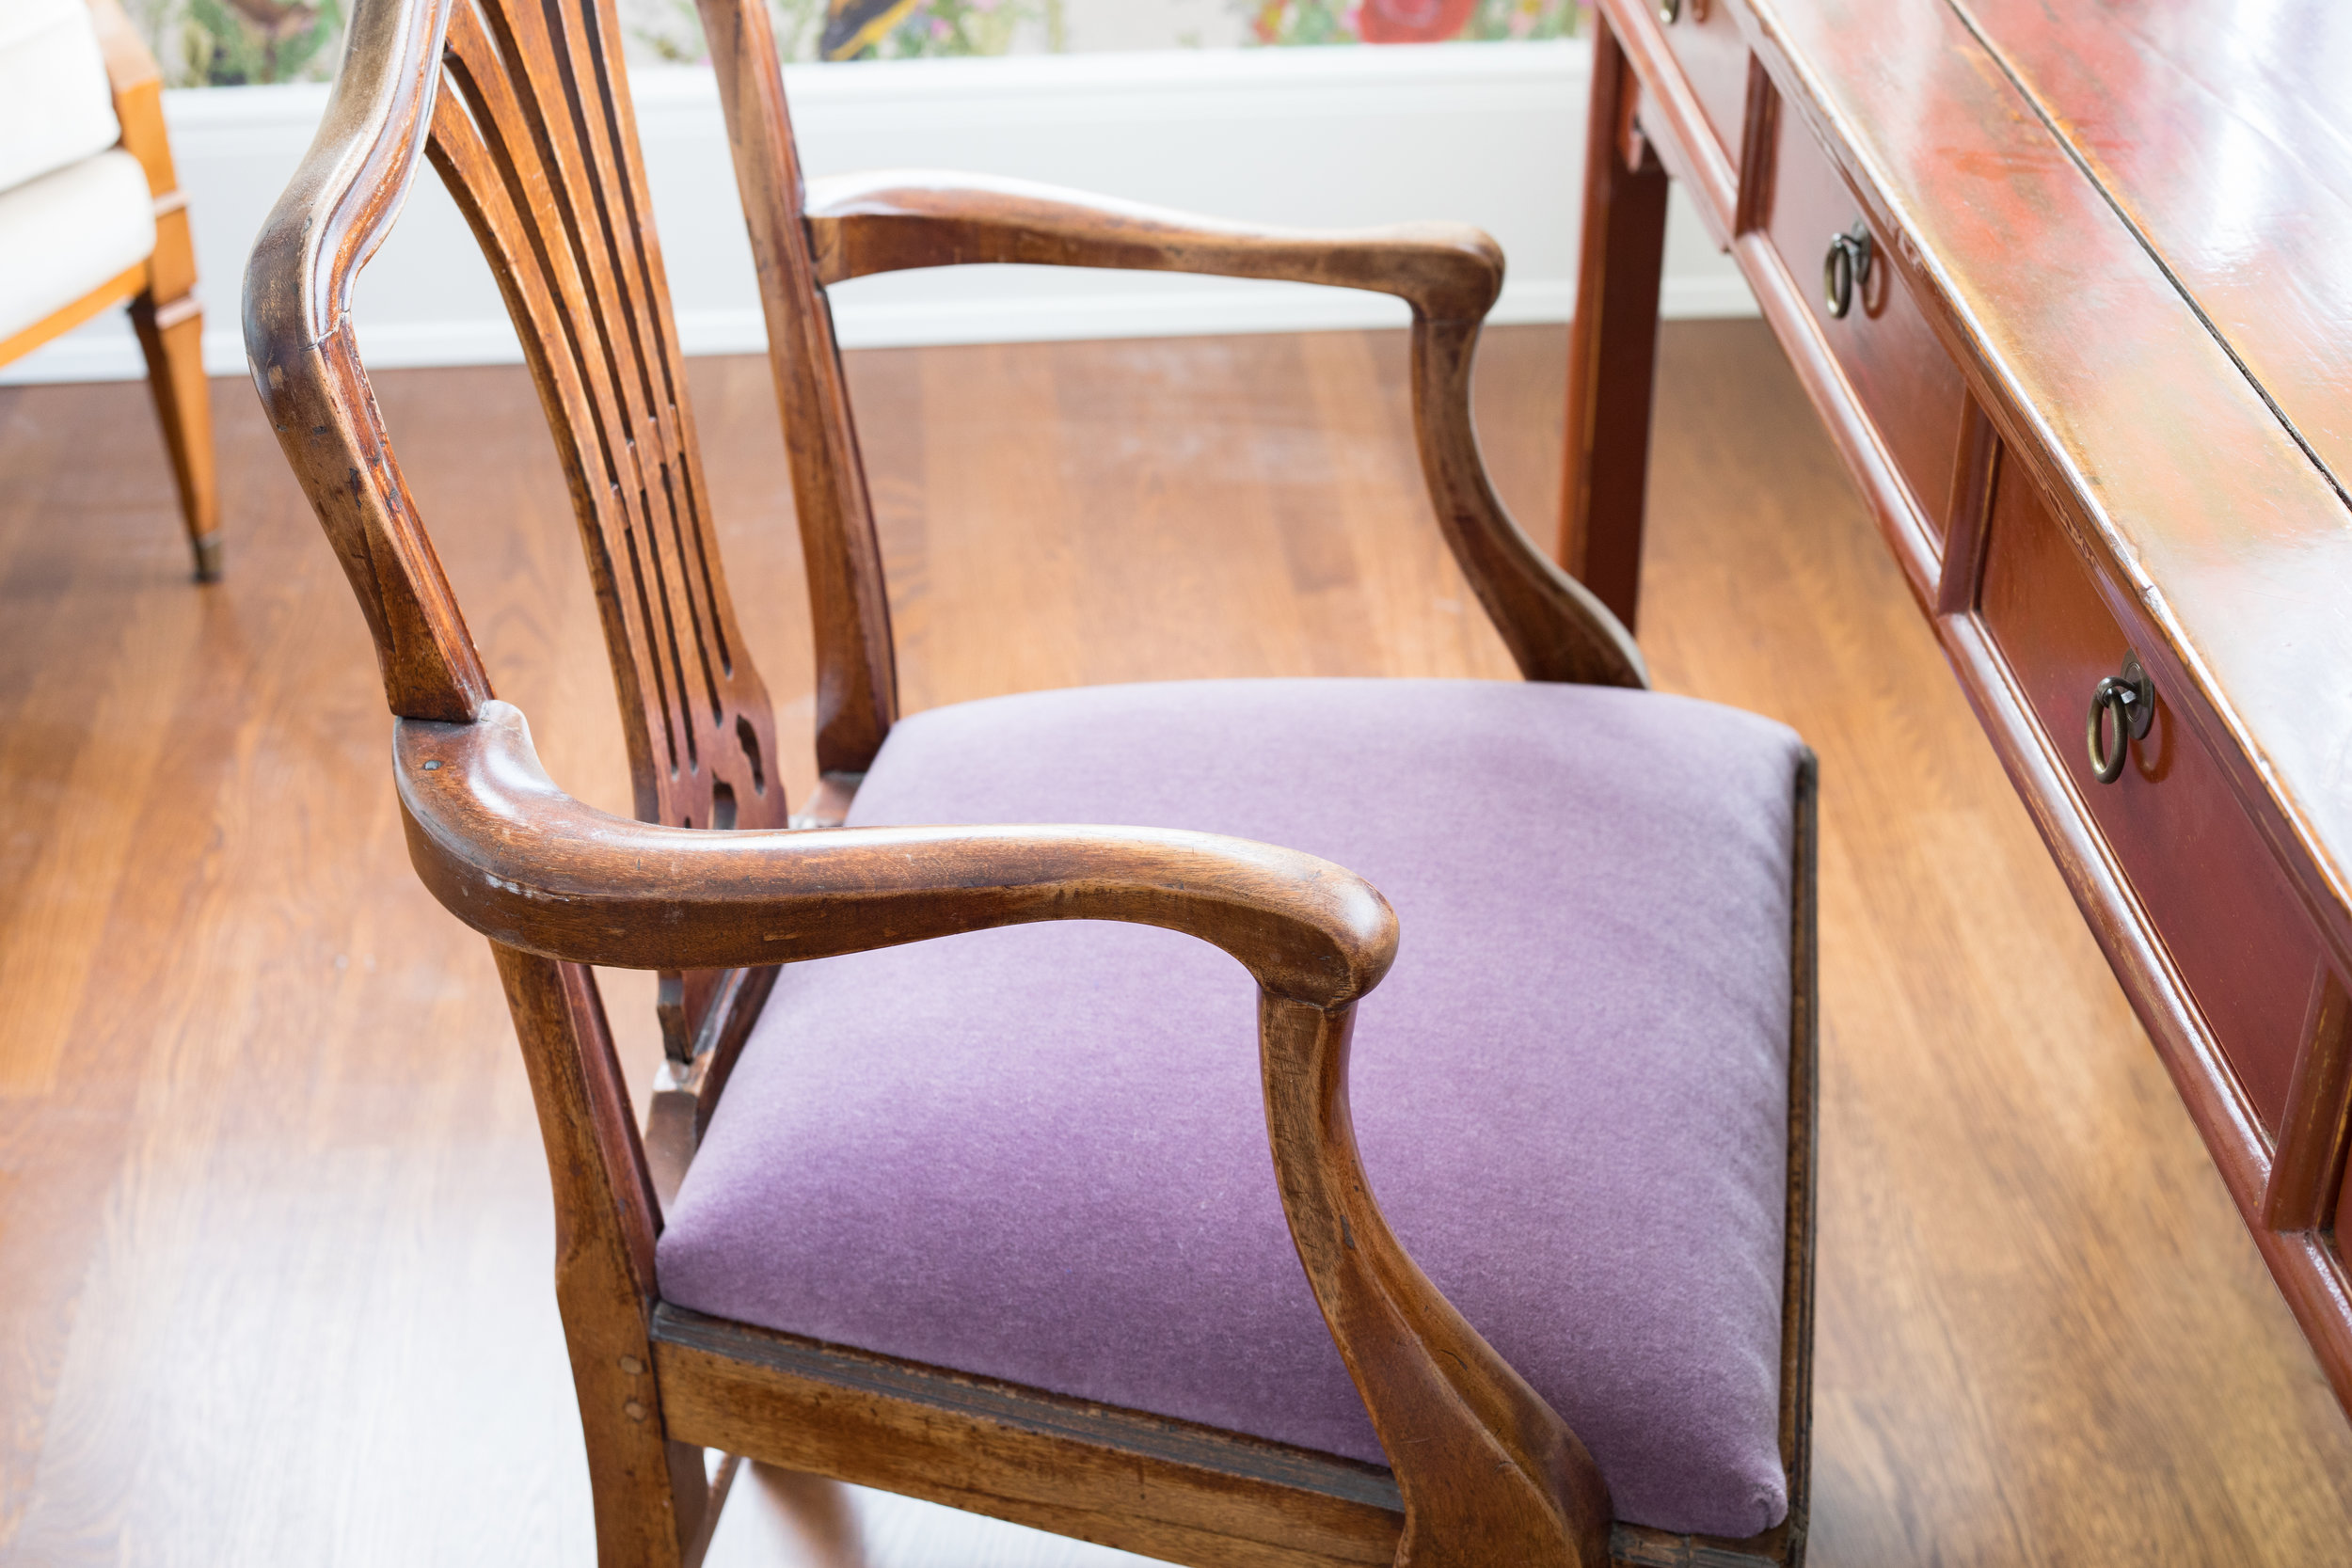 Vintage chair refinishing and reupholstery San Francisco Bay Area